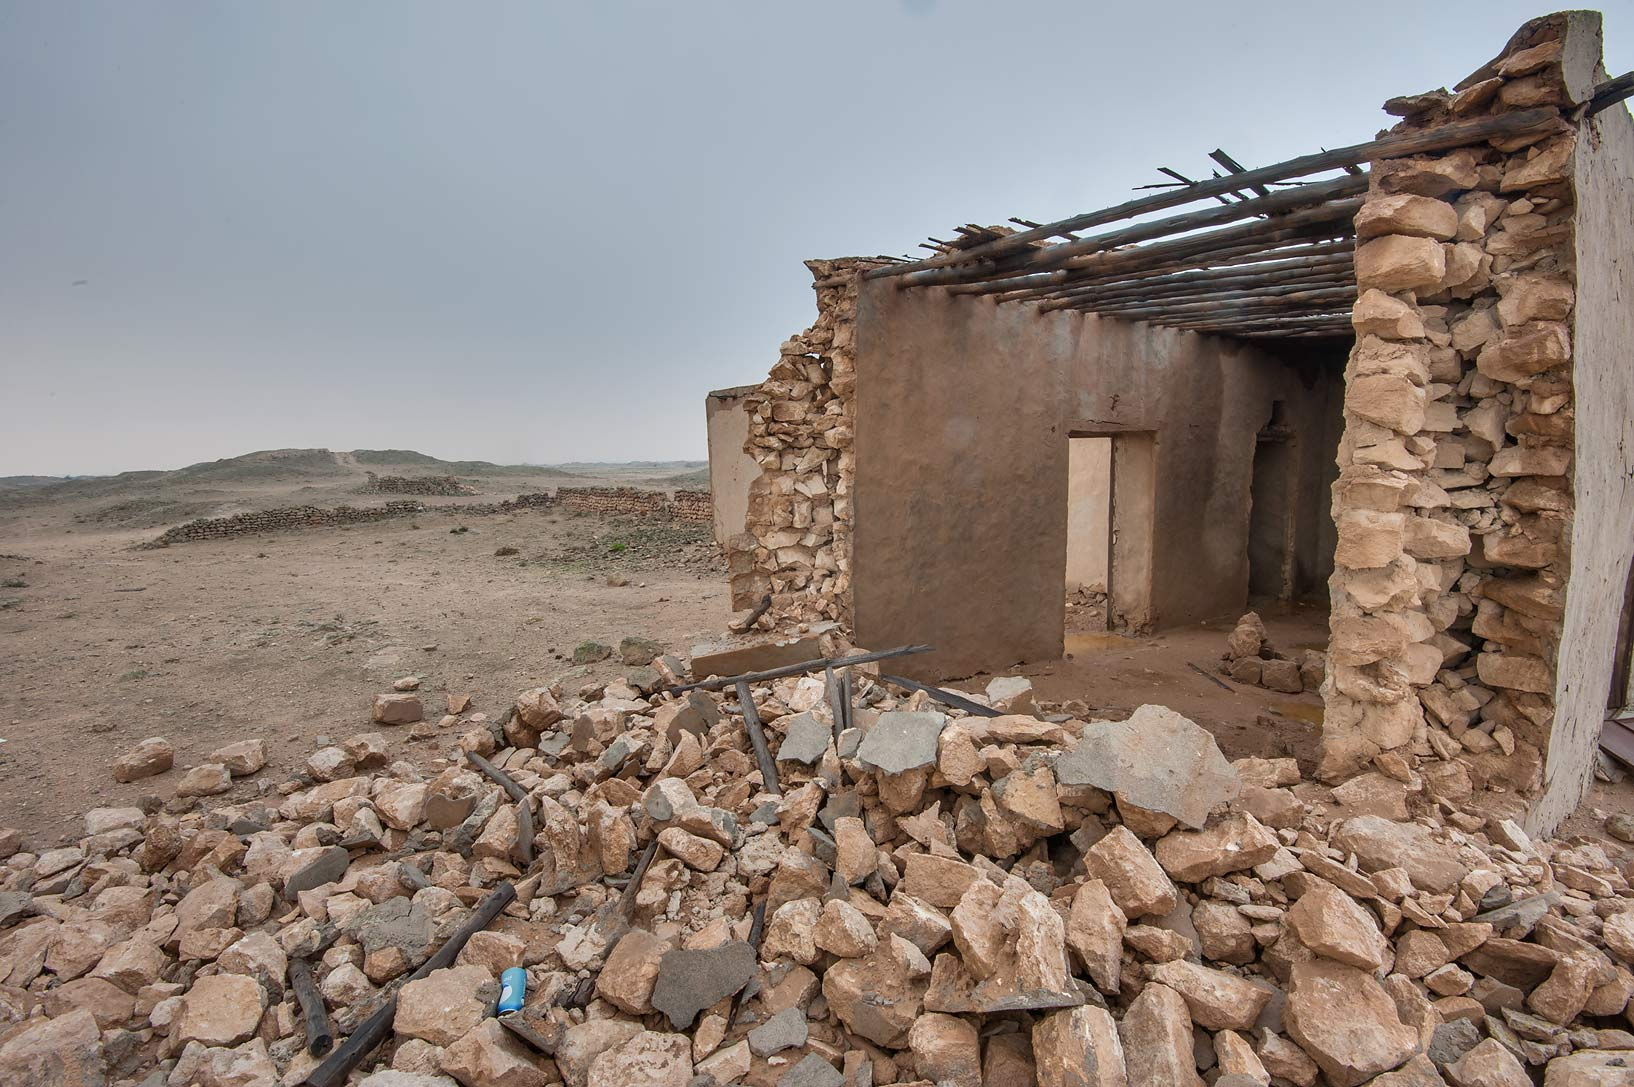 Remains of a house near Jabal Al Jassasiya, on north-eastern coast. Qatar